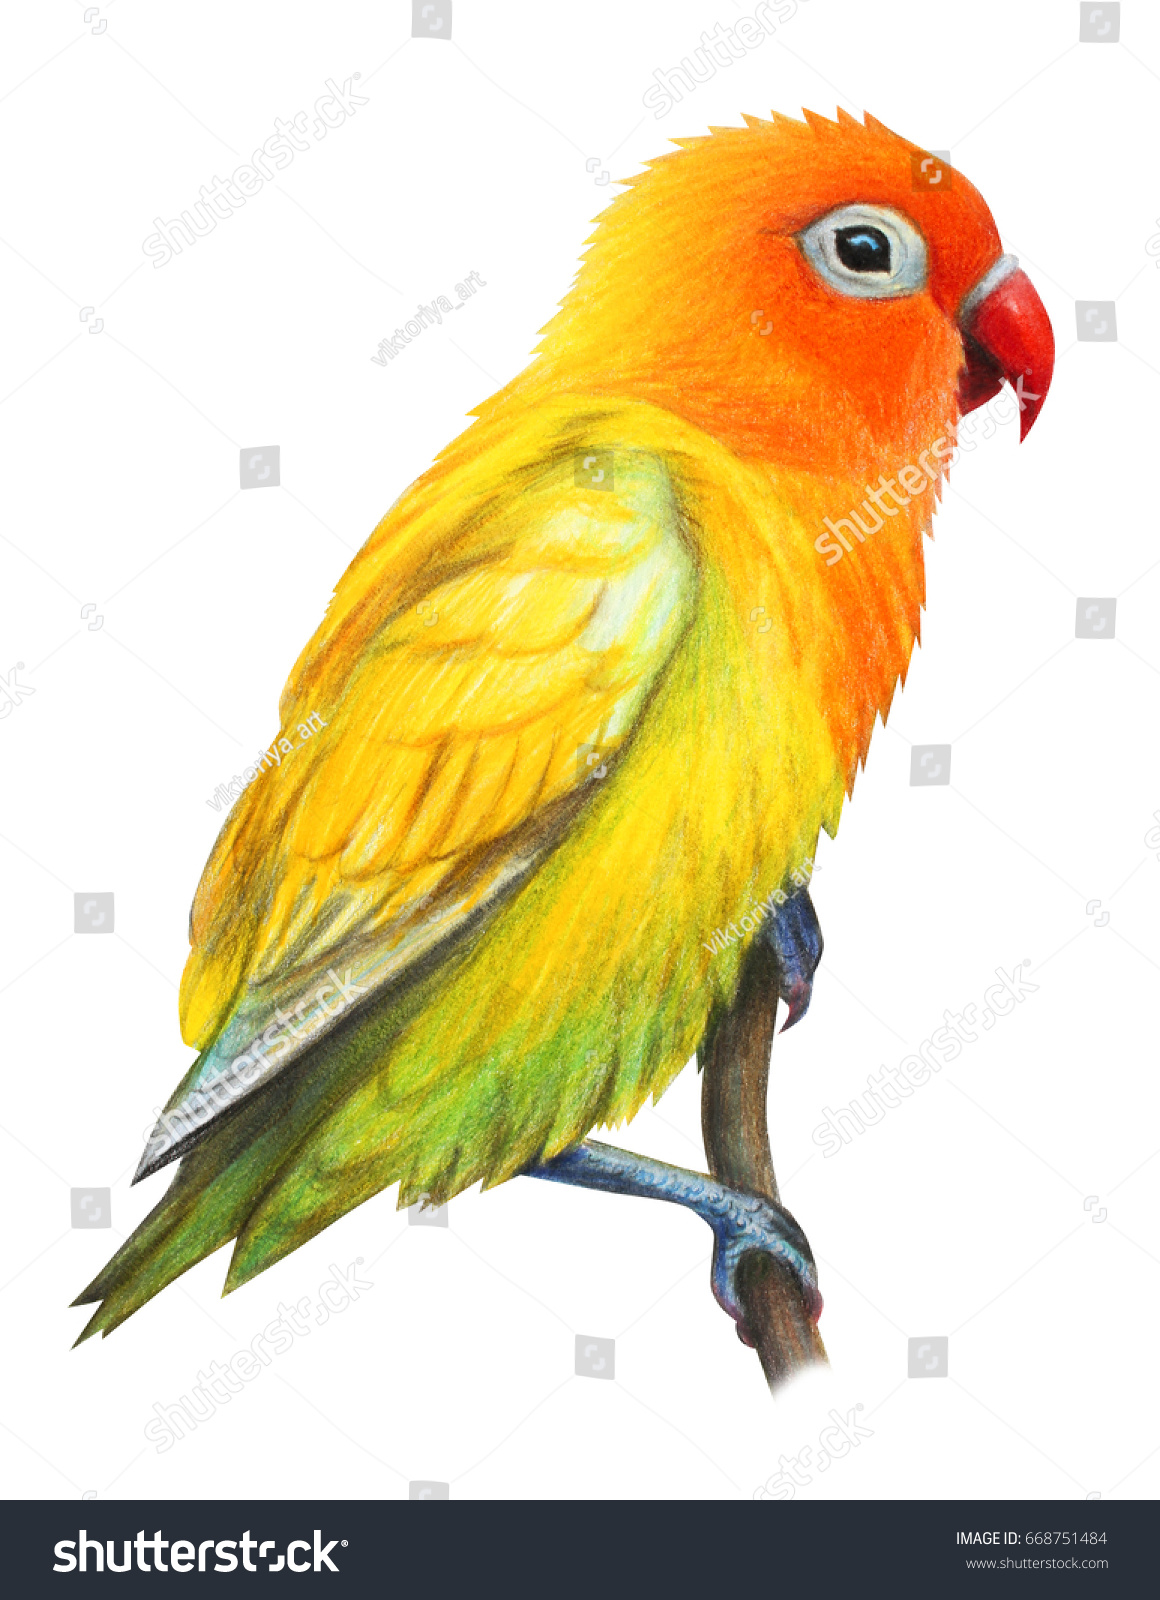 yellow realistic african parrot drawing stock illustration